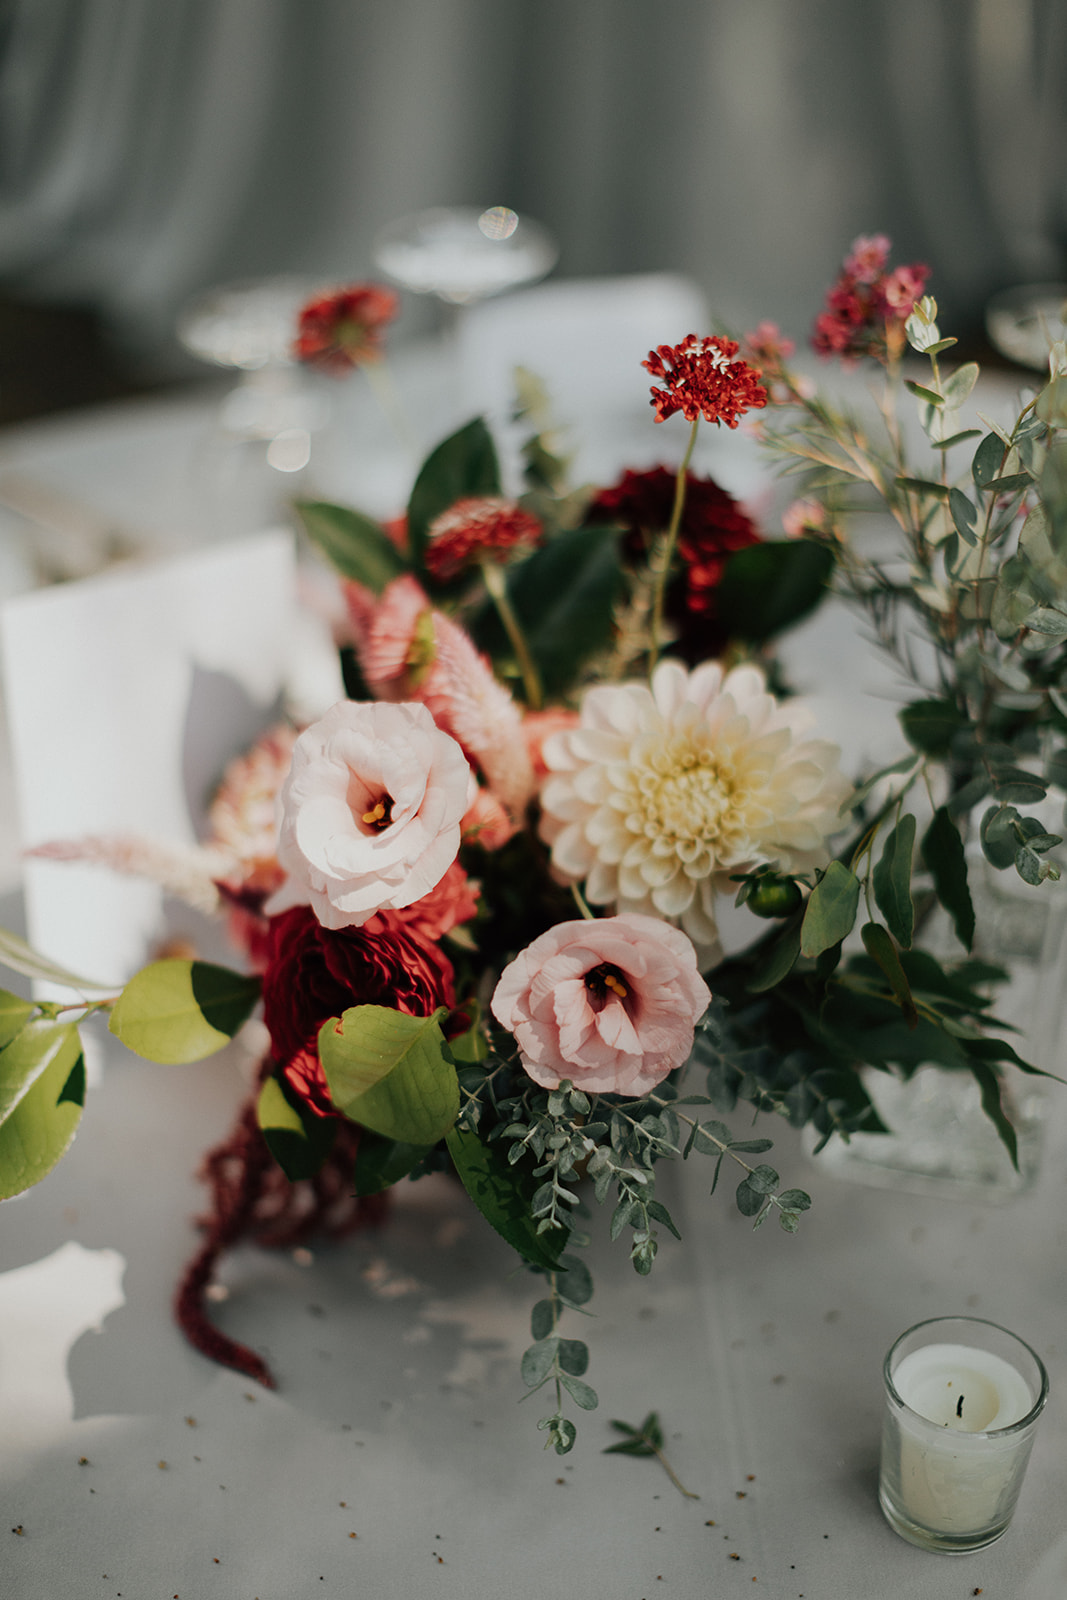 Bright summertime centerpieces with dahlias, lisianthus, roses and eucalyptus in hammered brass vases by Venn Floral at Ru's Farm in Healdsburg photographed by Logan Cole.